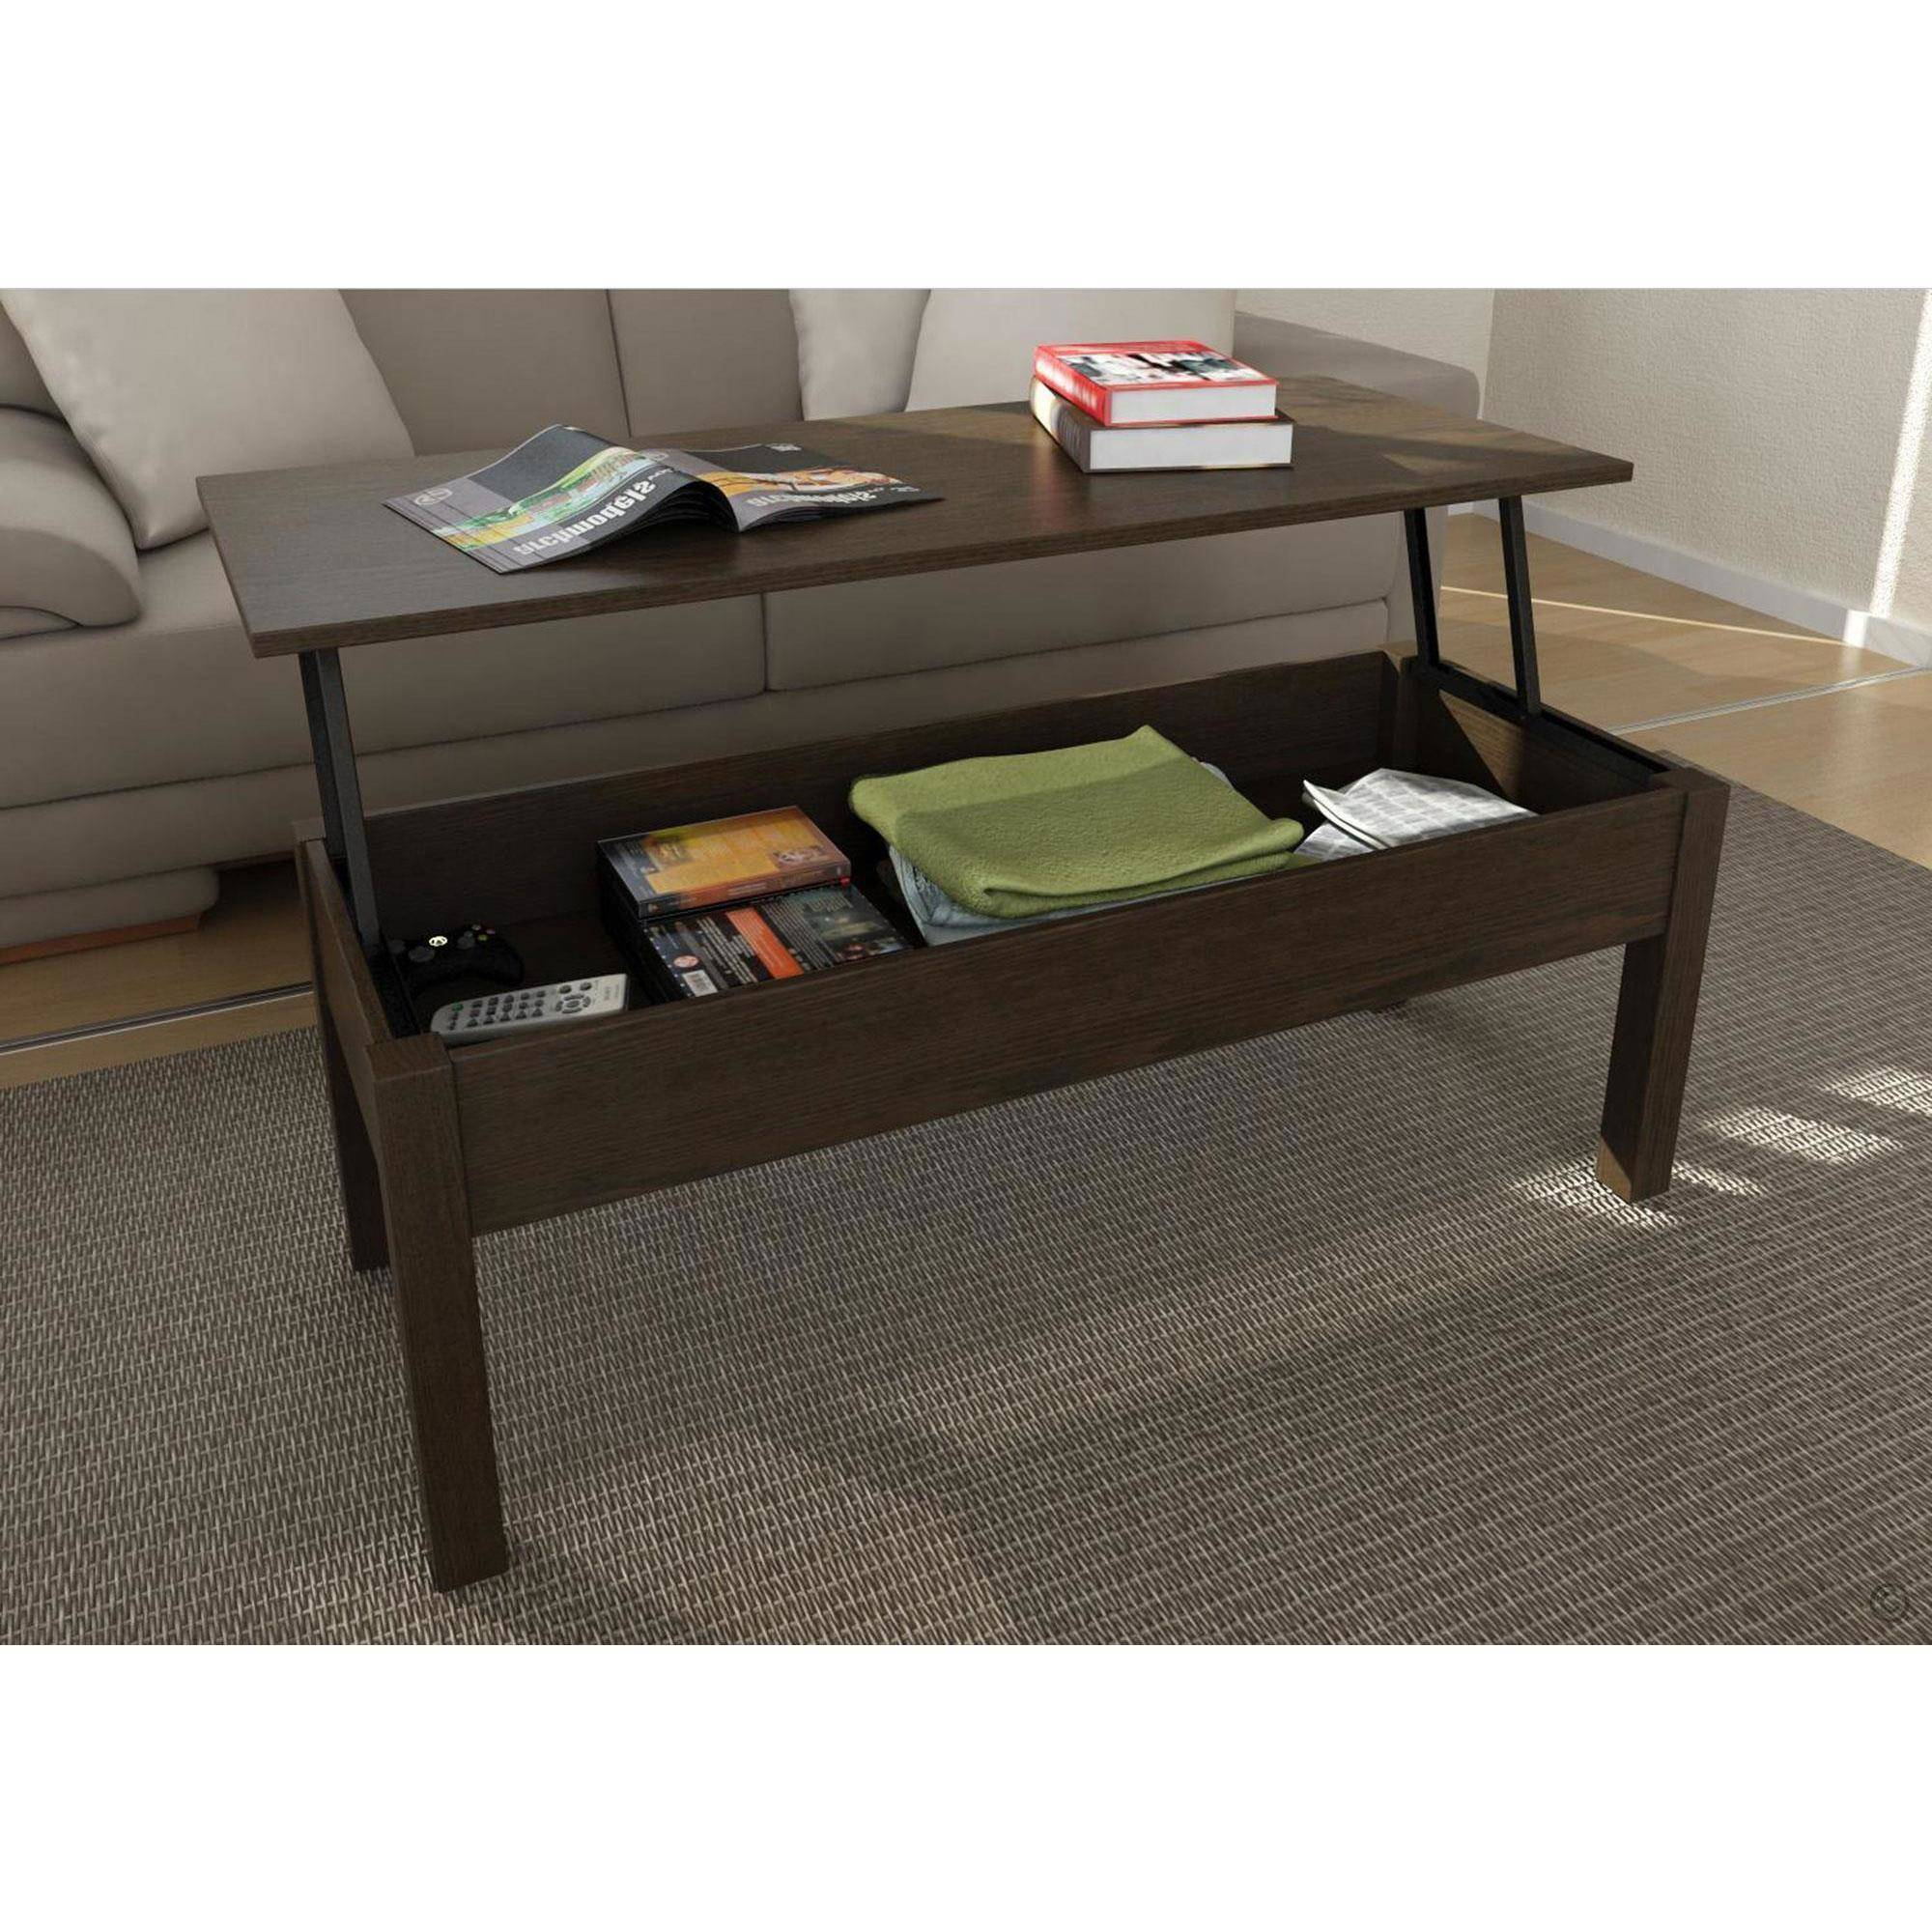 mainstays lift-top coffee table, multiple colors - walmart